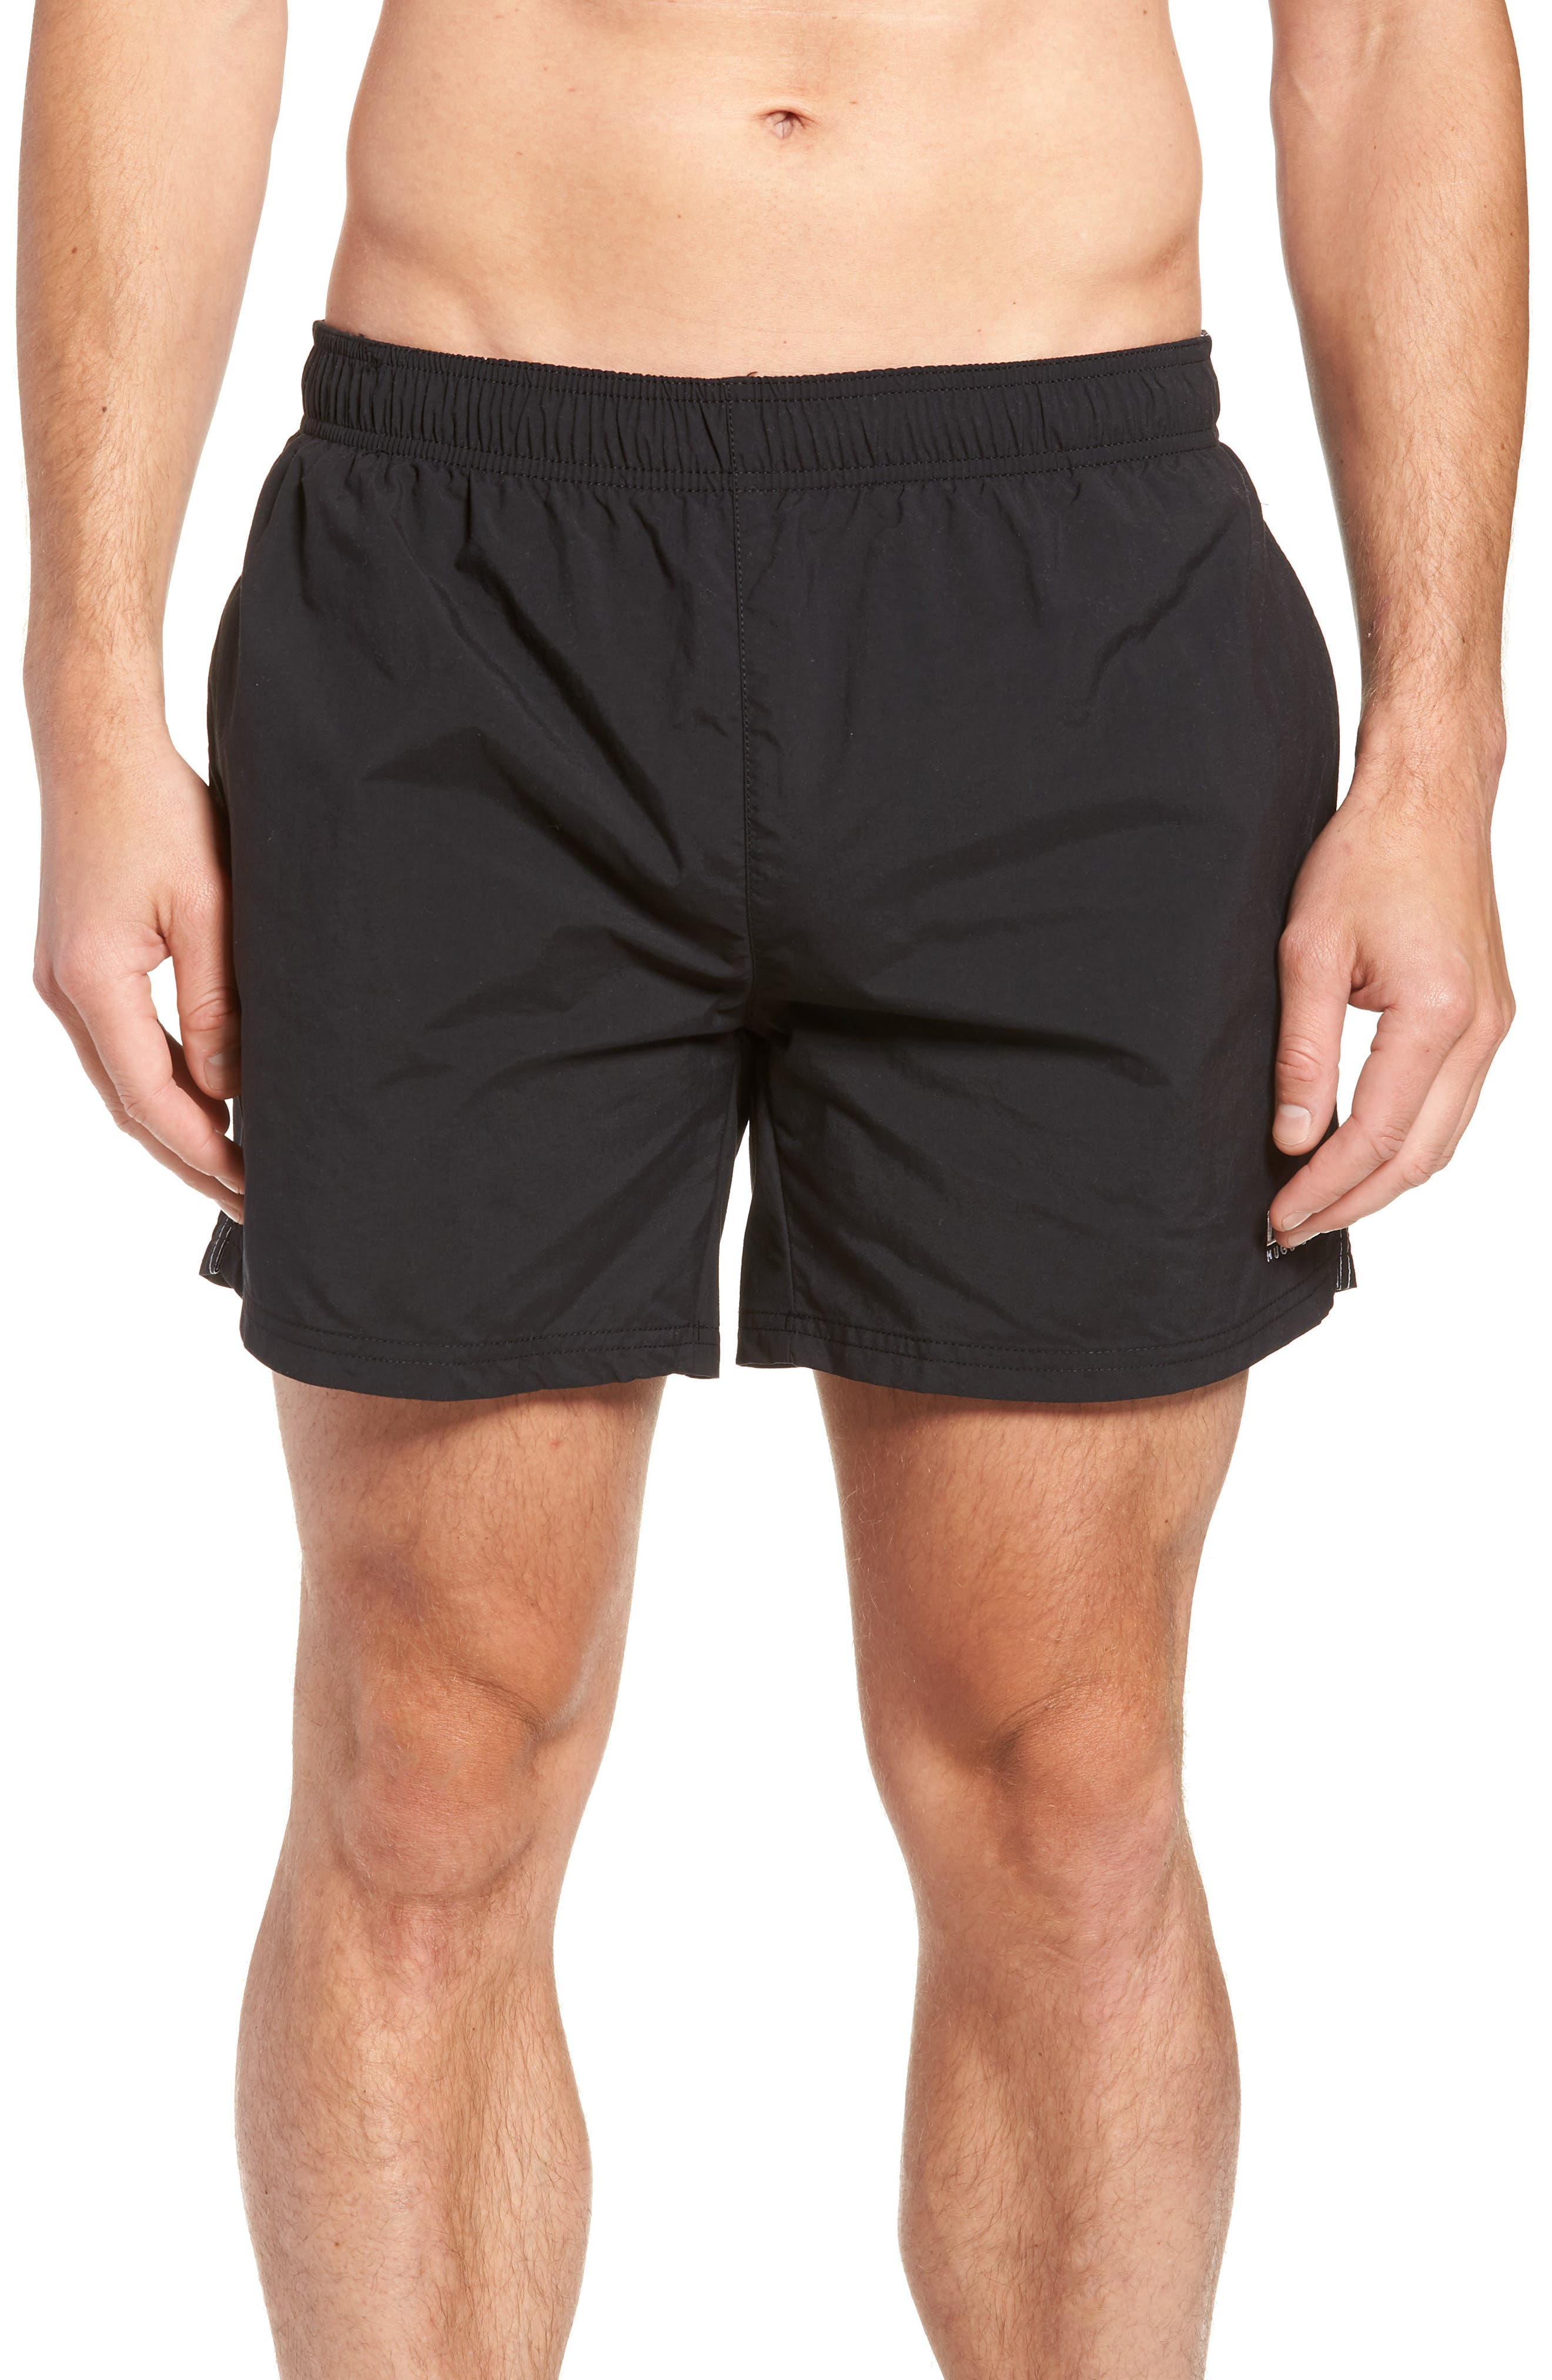 Perch Swim Trunks,                         Main,                         color, 001